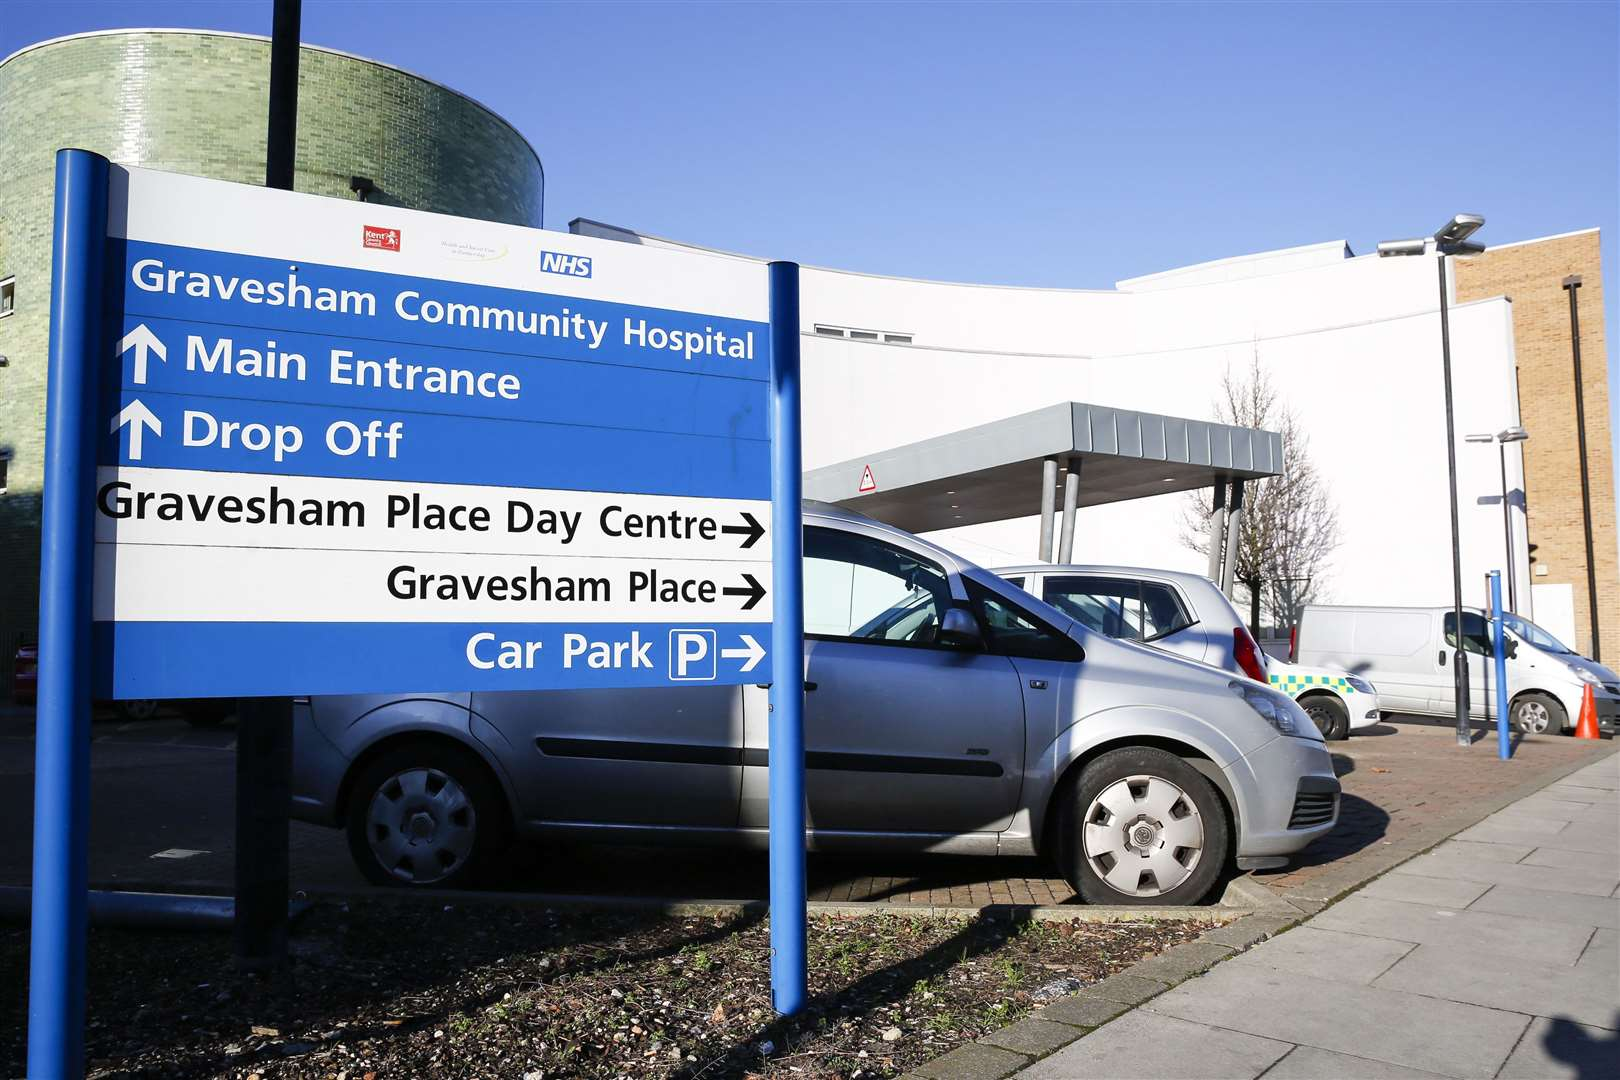 One of the options includes moving some urgent services to the community hospital in Gravesham